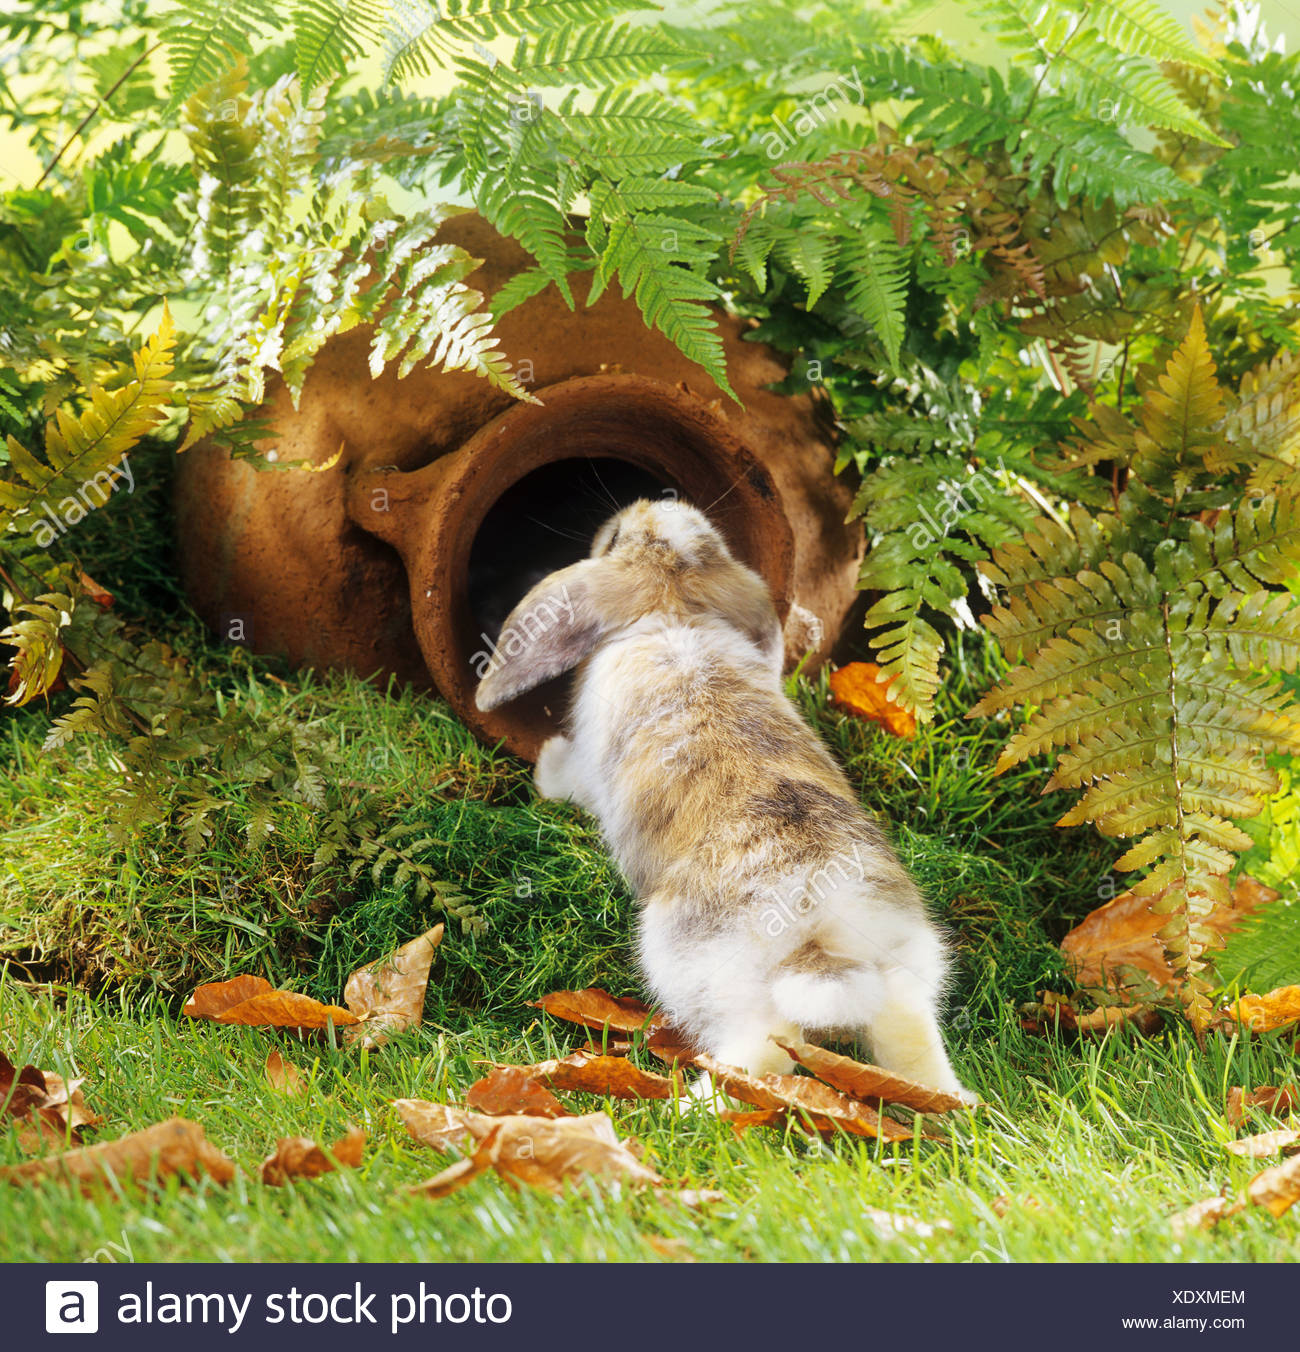 aoung pagmy rabbit - in garden with amphora - Stock Image